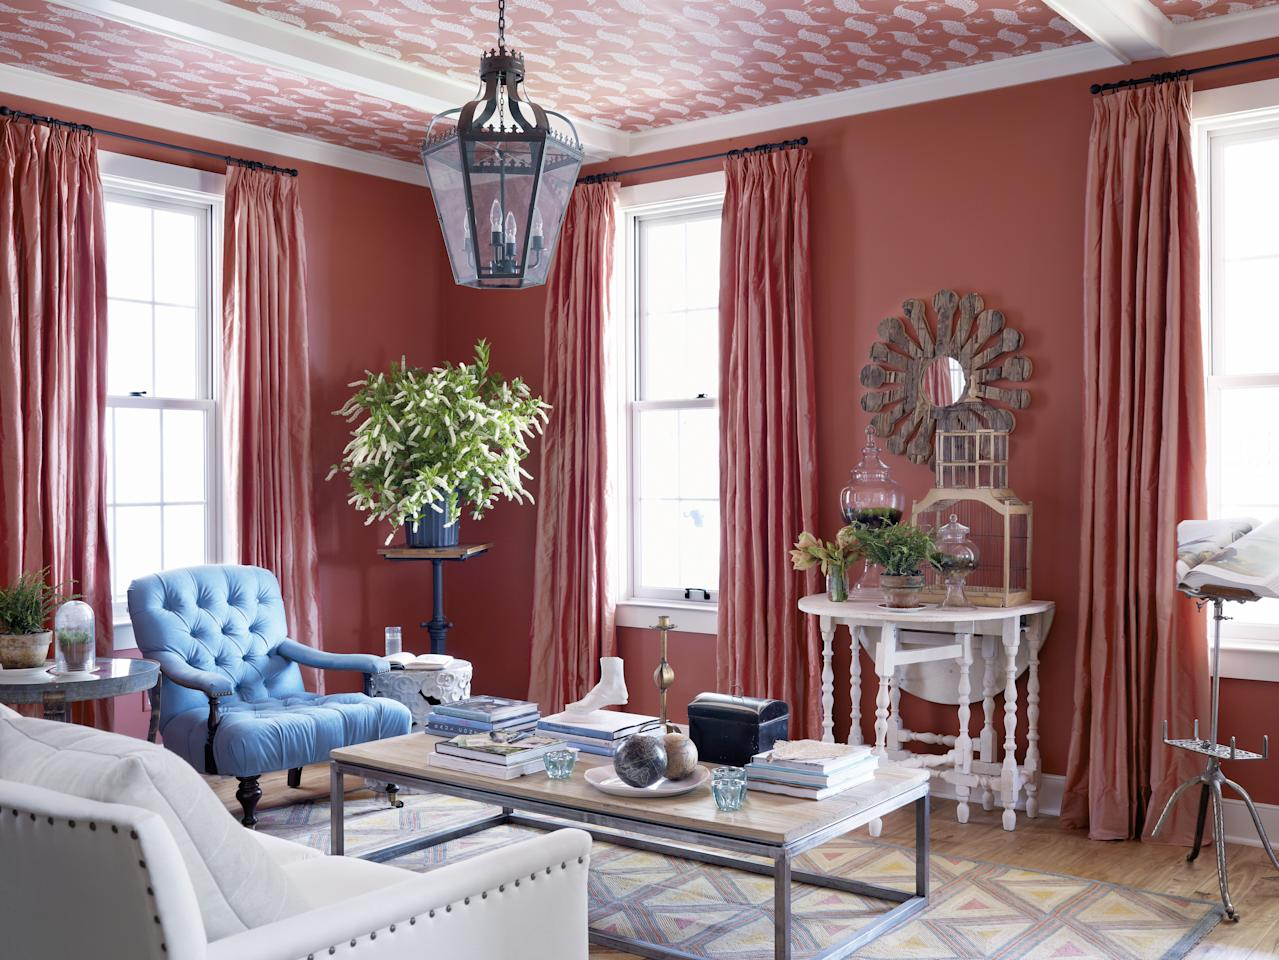 "<p>Certain paint colors can impact your mood, make a room appear brighter and larger, or even give your interior an entirely new look. That said, it's not always easy landing on the <a href=""https://www.goodhousekeeping.com/home-products/interior-paint-reviews/g2308/interior-paints/"" target=""_blank"">right paint color</a> for your space, especially when it comes to the living room. You want to choose a hue that suits your <a href=""https://www.goodhousekeeping.com/home/decorating-ideas/g1500/decor-ideas-living-room/"" target=""_blank"">living room's decor</a> and draws attention away from any flaws that might exist (there's never enough square footage or sunlight, right?). See this collection of 30 living rooms, featuring stylish paint colors for just about any aesthetic. </p>"